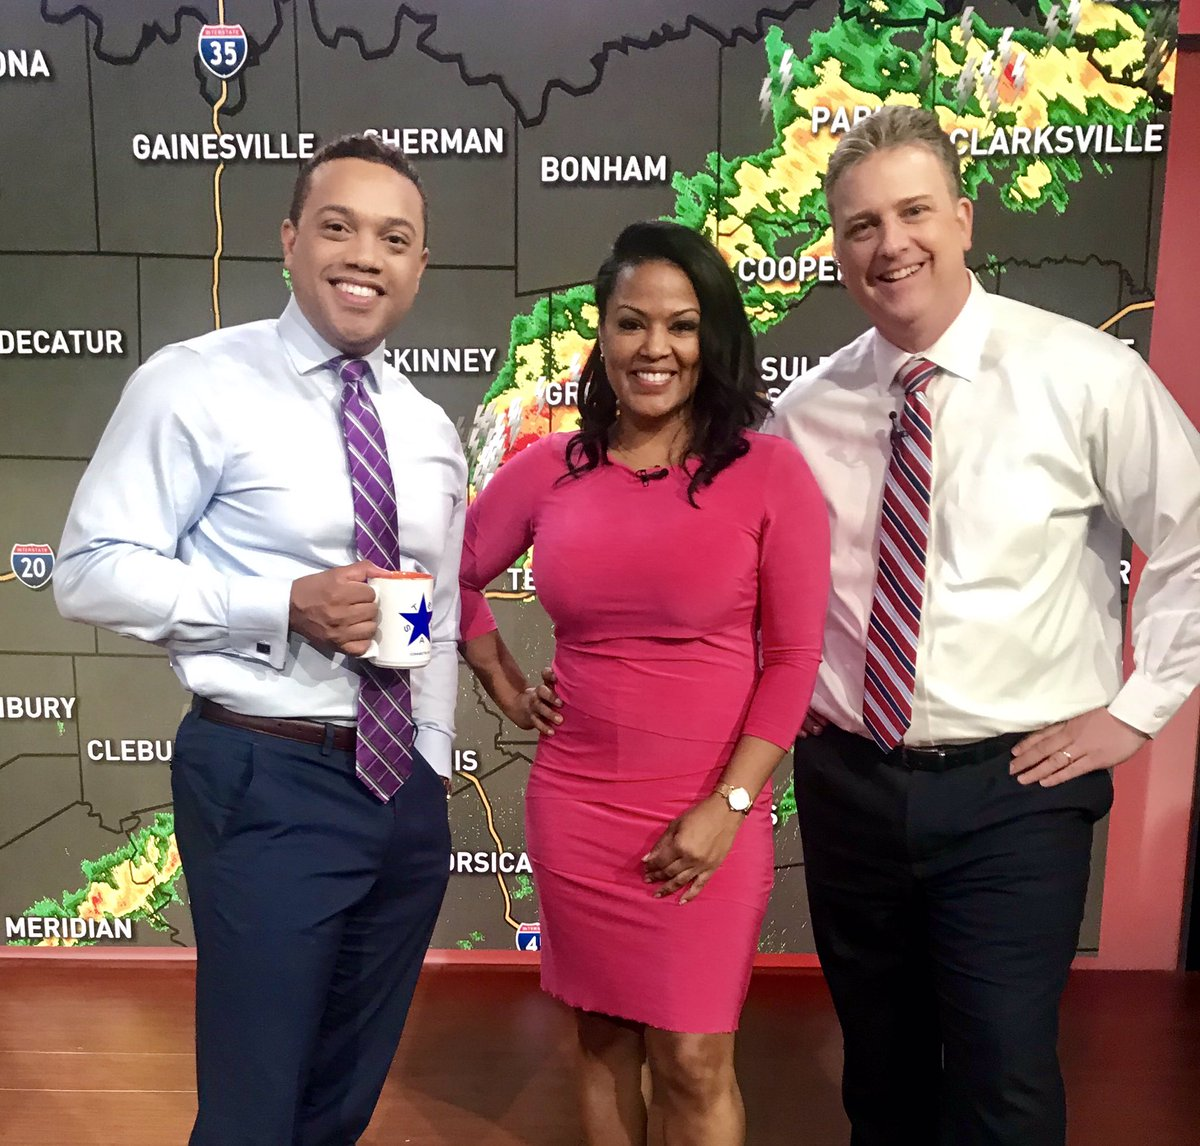 Things are looking up now after strong storms moved through DFW this morning. Many of us now seeing sunshine ☀️ But all of us aren't out the woods just yet - Join us, right now! @NBCDFW @NBCDFWWeather @GrantJNBC5 @KeishaBurnsNBC5